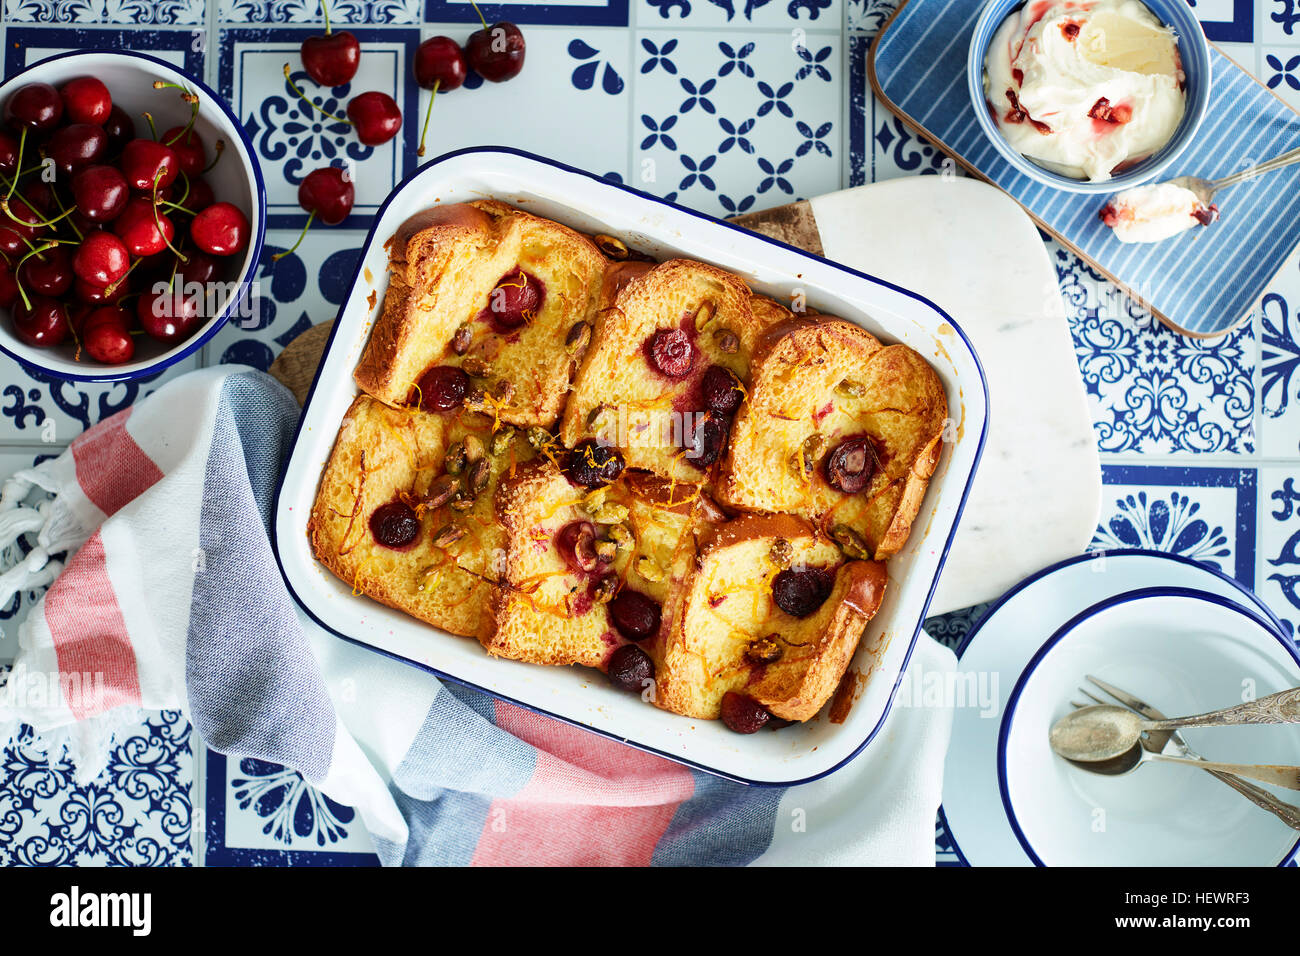 Cherry bread and butter pudding - Stock Image